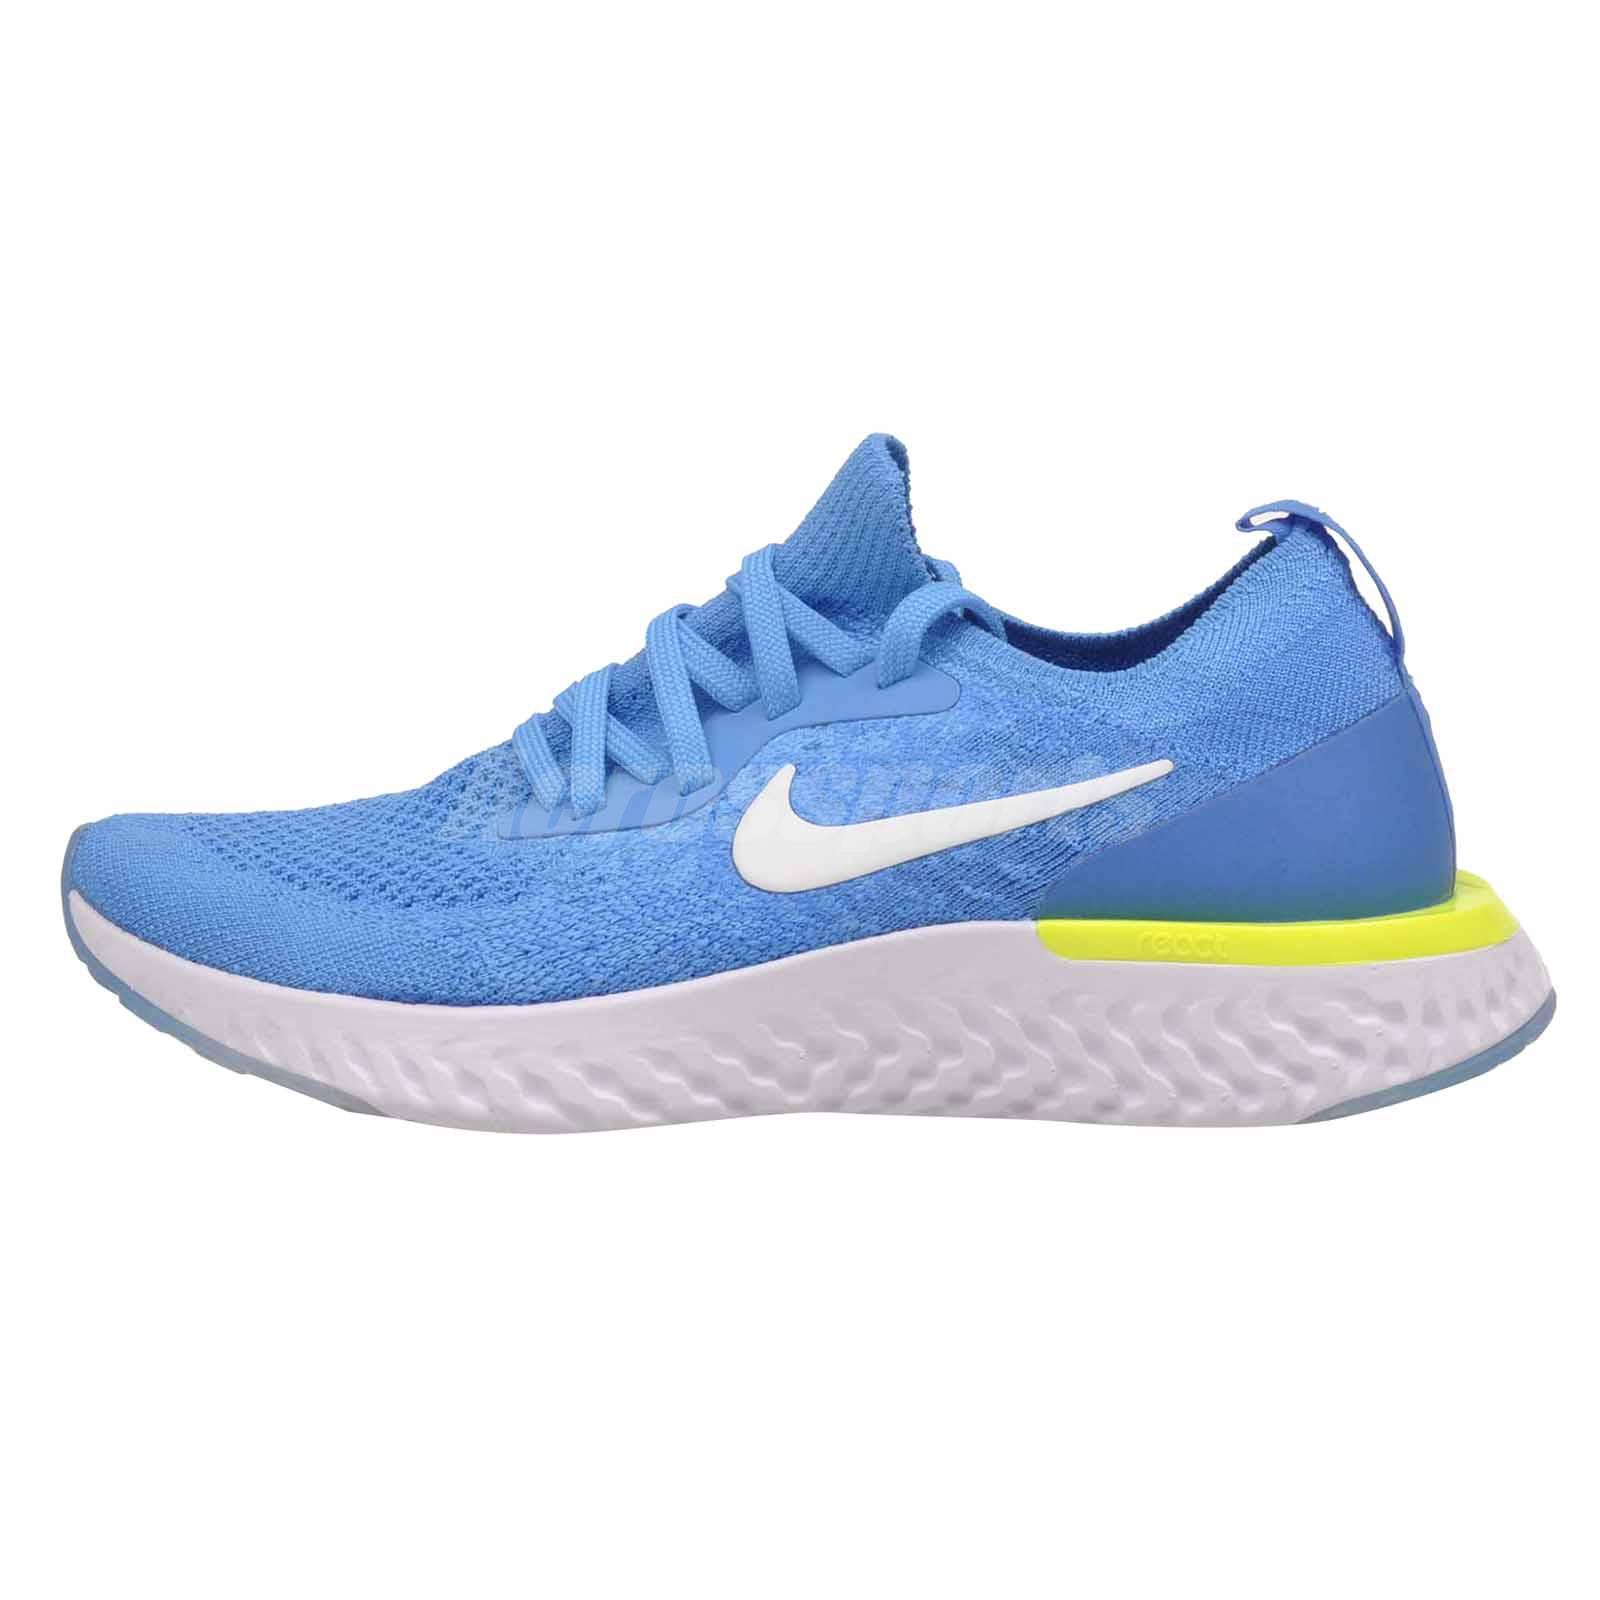 403318aae22 Nike Epic React Flyknit GS Kids Youth Running Shoes Blue Glow 943311 ...